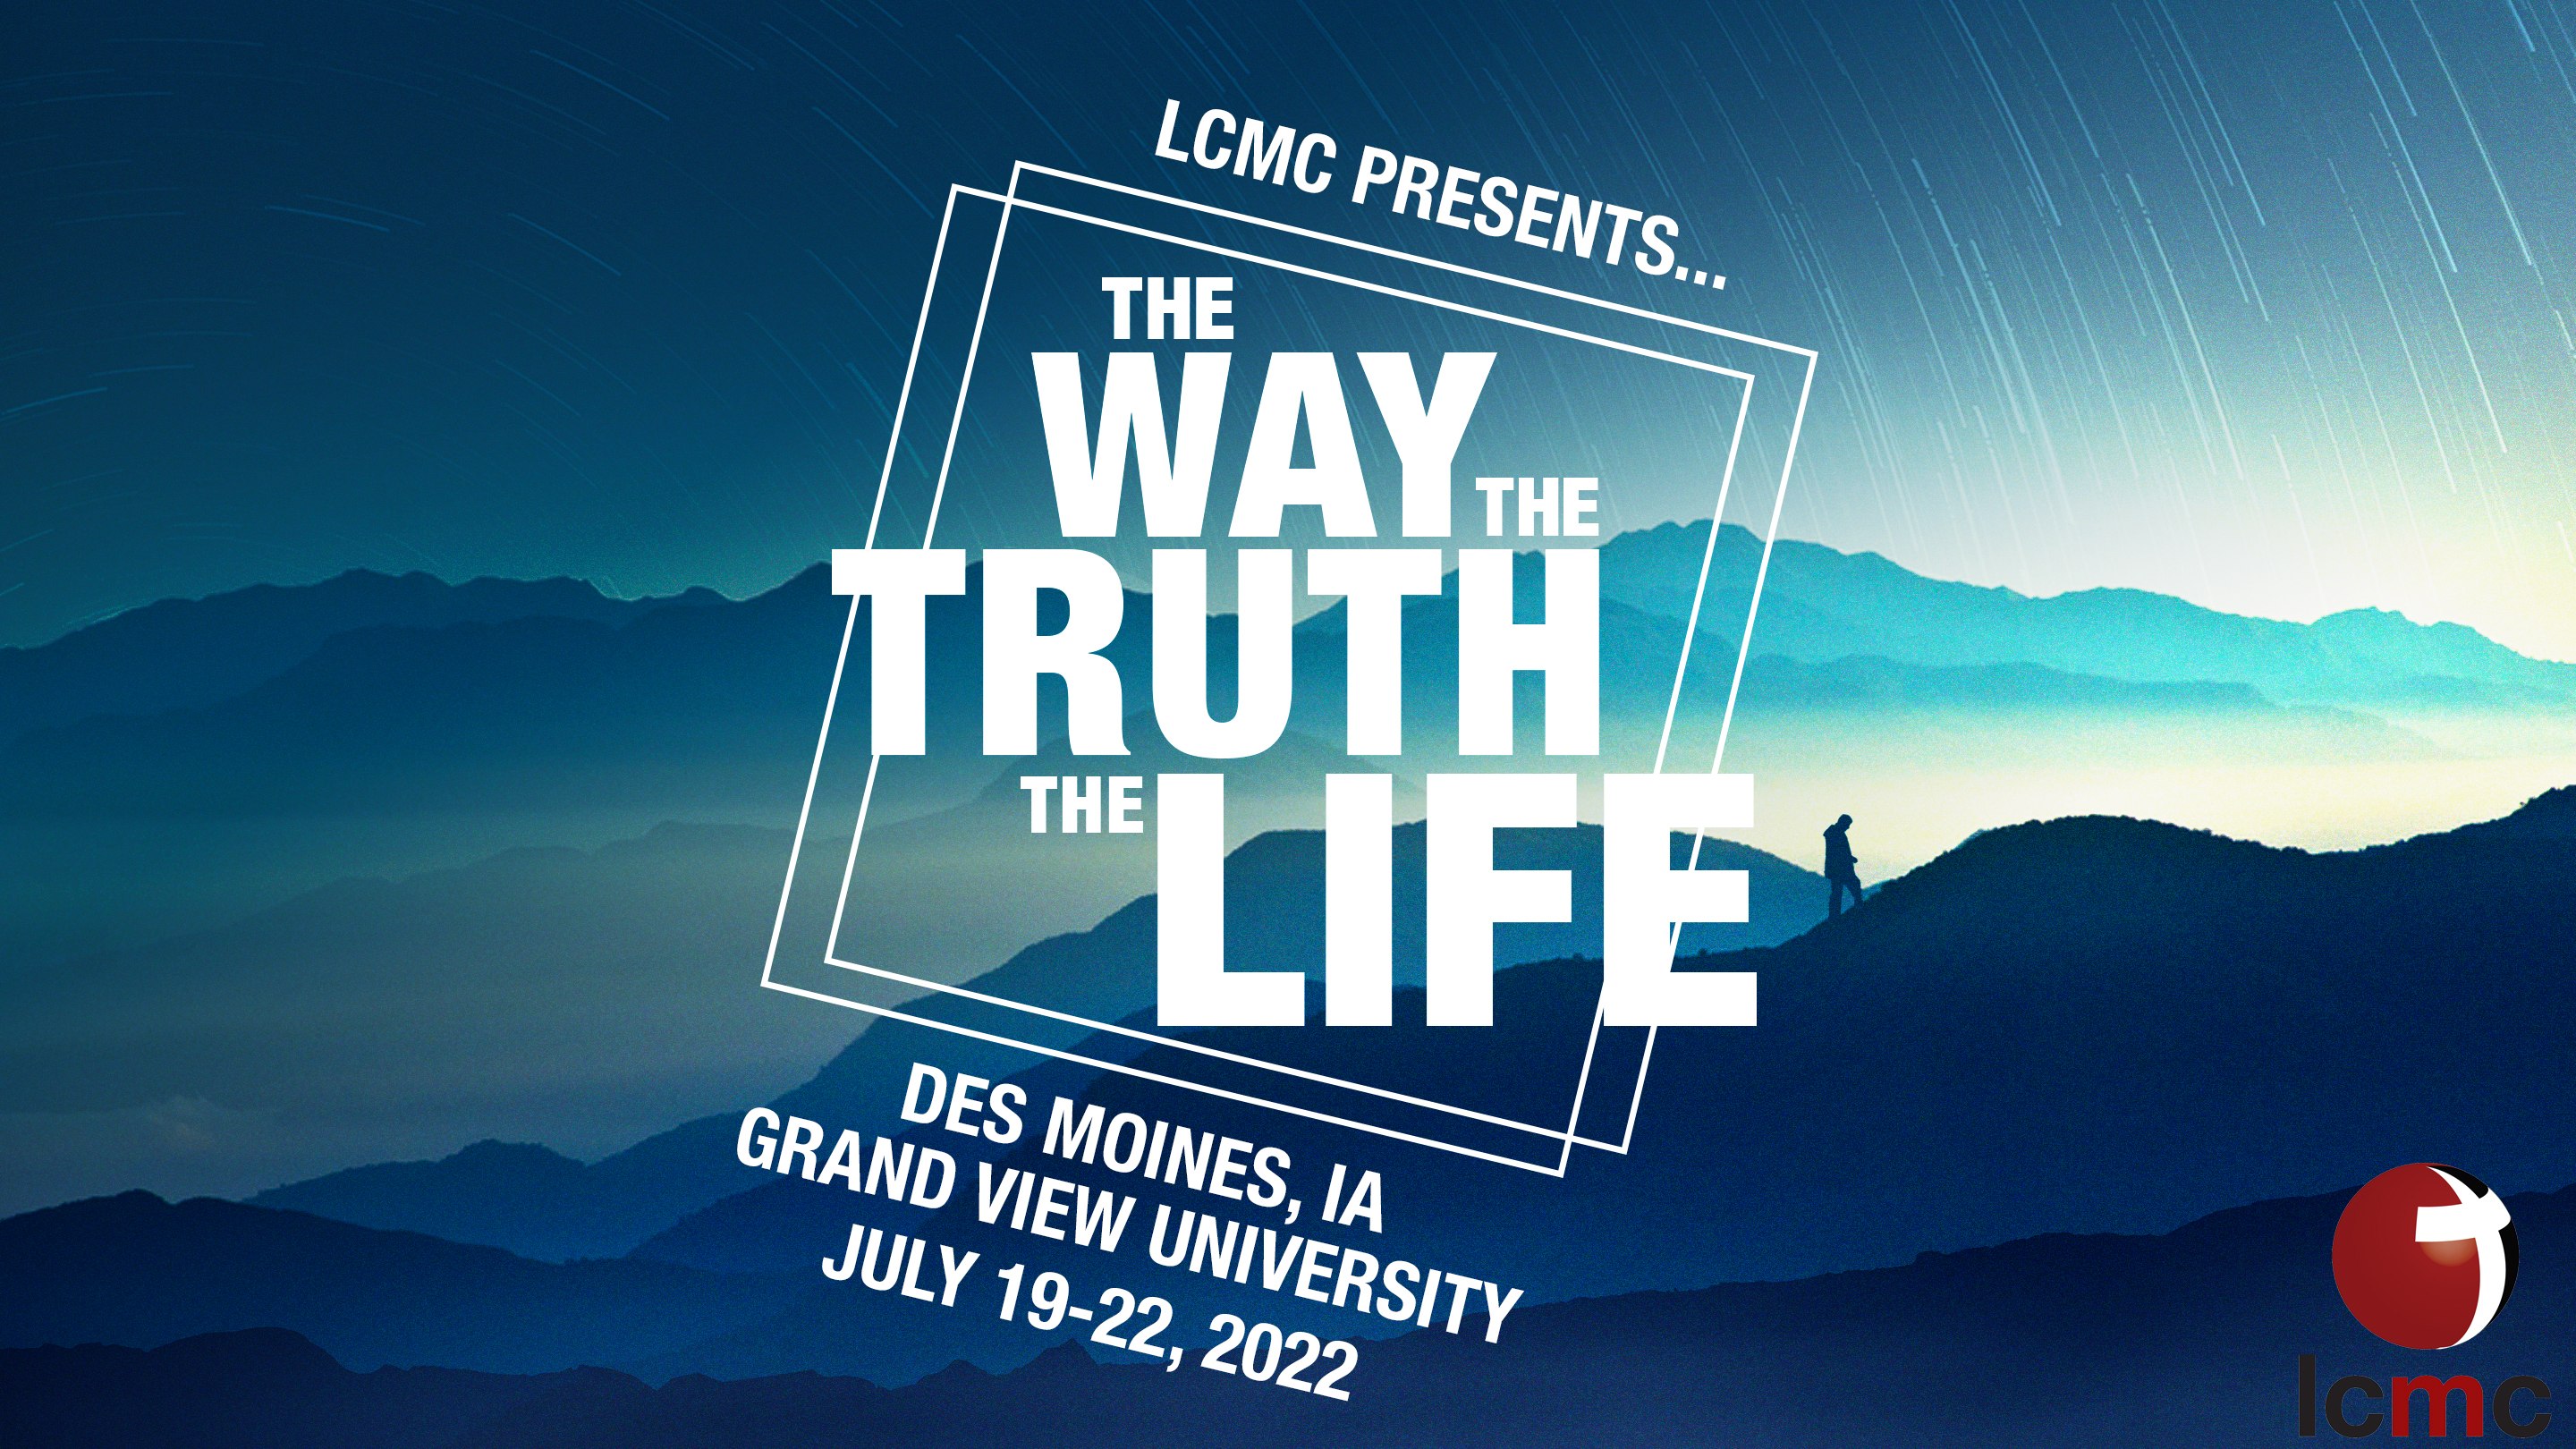 lcmc youth event logo